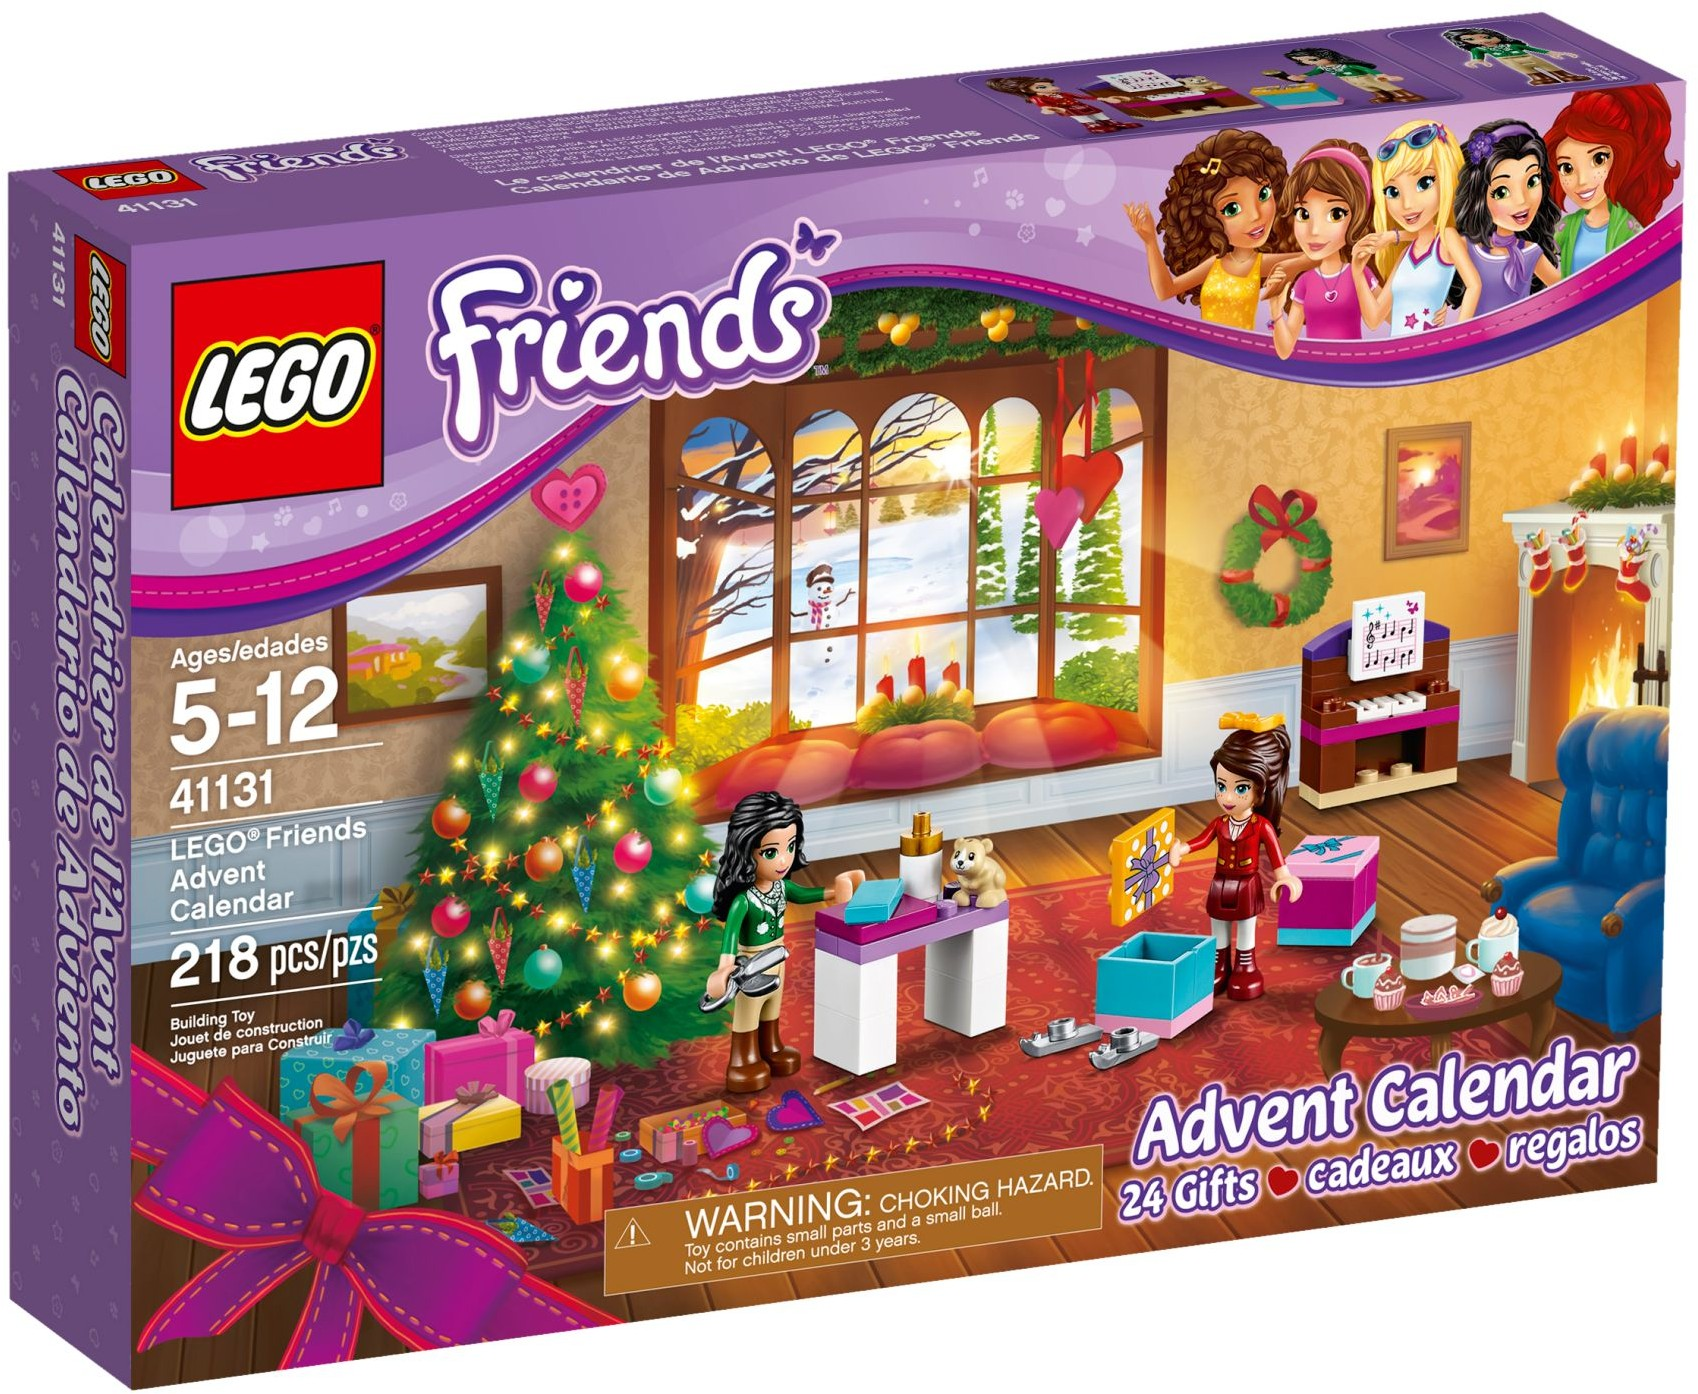 adventni kalendar lego friends SUPERLega.cz   obchod se super kostkami lega. LEGO Friends 41131  adventni kalendar lego friends